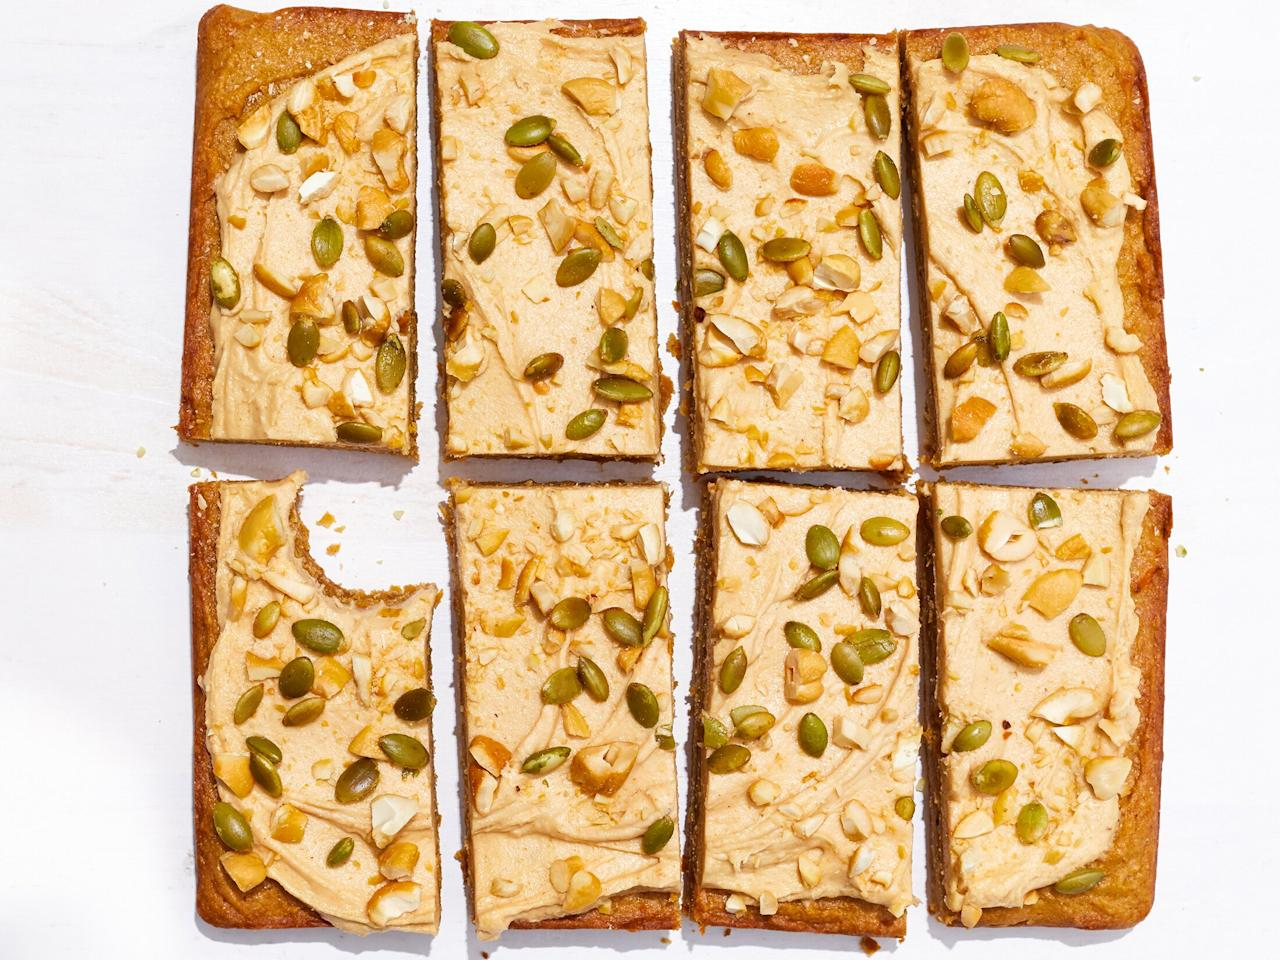 """<p>If zucchini and pumpkin can make a name for themselves in the dessert realm—why not butternut squash? These gluten-free cookie bars pack an impressive level of toasty, fall flavor into every bite thanks to a combination of nutty brown butter, roasted butternut squash, nut butter, and a downright addictive creamy cashew butter-cream cheese icing (seriously, you're gonna wanna spread this on everything—make a double batch) that's elevated with a crunchy topper of toasted pepitas and cashews. We opt for rice flour over all-purpose because this gluten-free alternative can better absorb moisture from the squash to yield a delightfully tender—not wet or overtly cakey—texture. While roasting fresh squash contributes a depth of caramelized flavor you really don't want to miss out on, you can find canned butternut squash in some supermarkets and <a href=""""https://www.amazon.com/Farmers-Market-Organic-Canned-Butternut/dp/B00R14B98A?ie=UTF8&camp=1789&creative=9325&linkCode=as2&creativeASIN=B00R14B98A&tag=cookin09a-20&ascsubtag=d41d8cd98f00b204e9800998ecf8427e"""" target=""""_blank"""">online</a> if you need a speedier swap; in fact, you could even use canned pumpkin in place of the pureed squash. In short, these brown butter butternut blondies will give every bit of convincing you may need need to believe that golden, sweet butternut squash deserves a spot on the holiday dessert table as much as any pumpkin-based treat. </p> <p><a href=""""https://www.myrecipes.com/recipe/butternut-nut-butter-bars"""">Butternut-Nut Butter Bars Recipe</a></p>"""